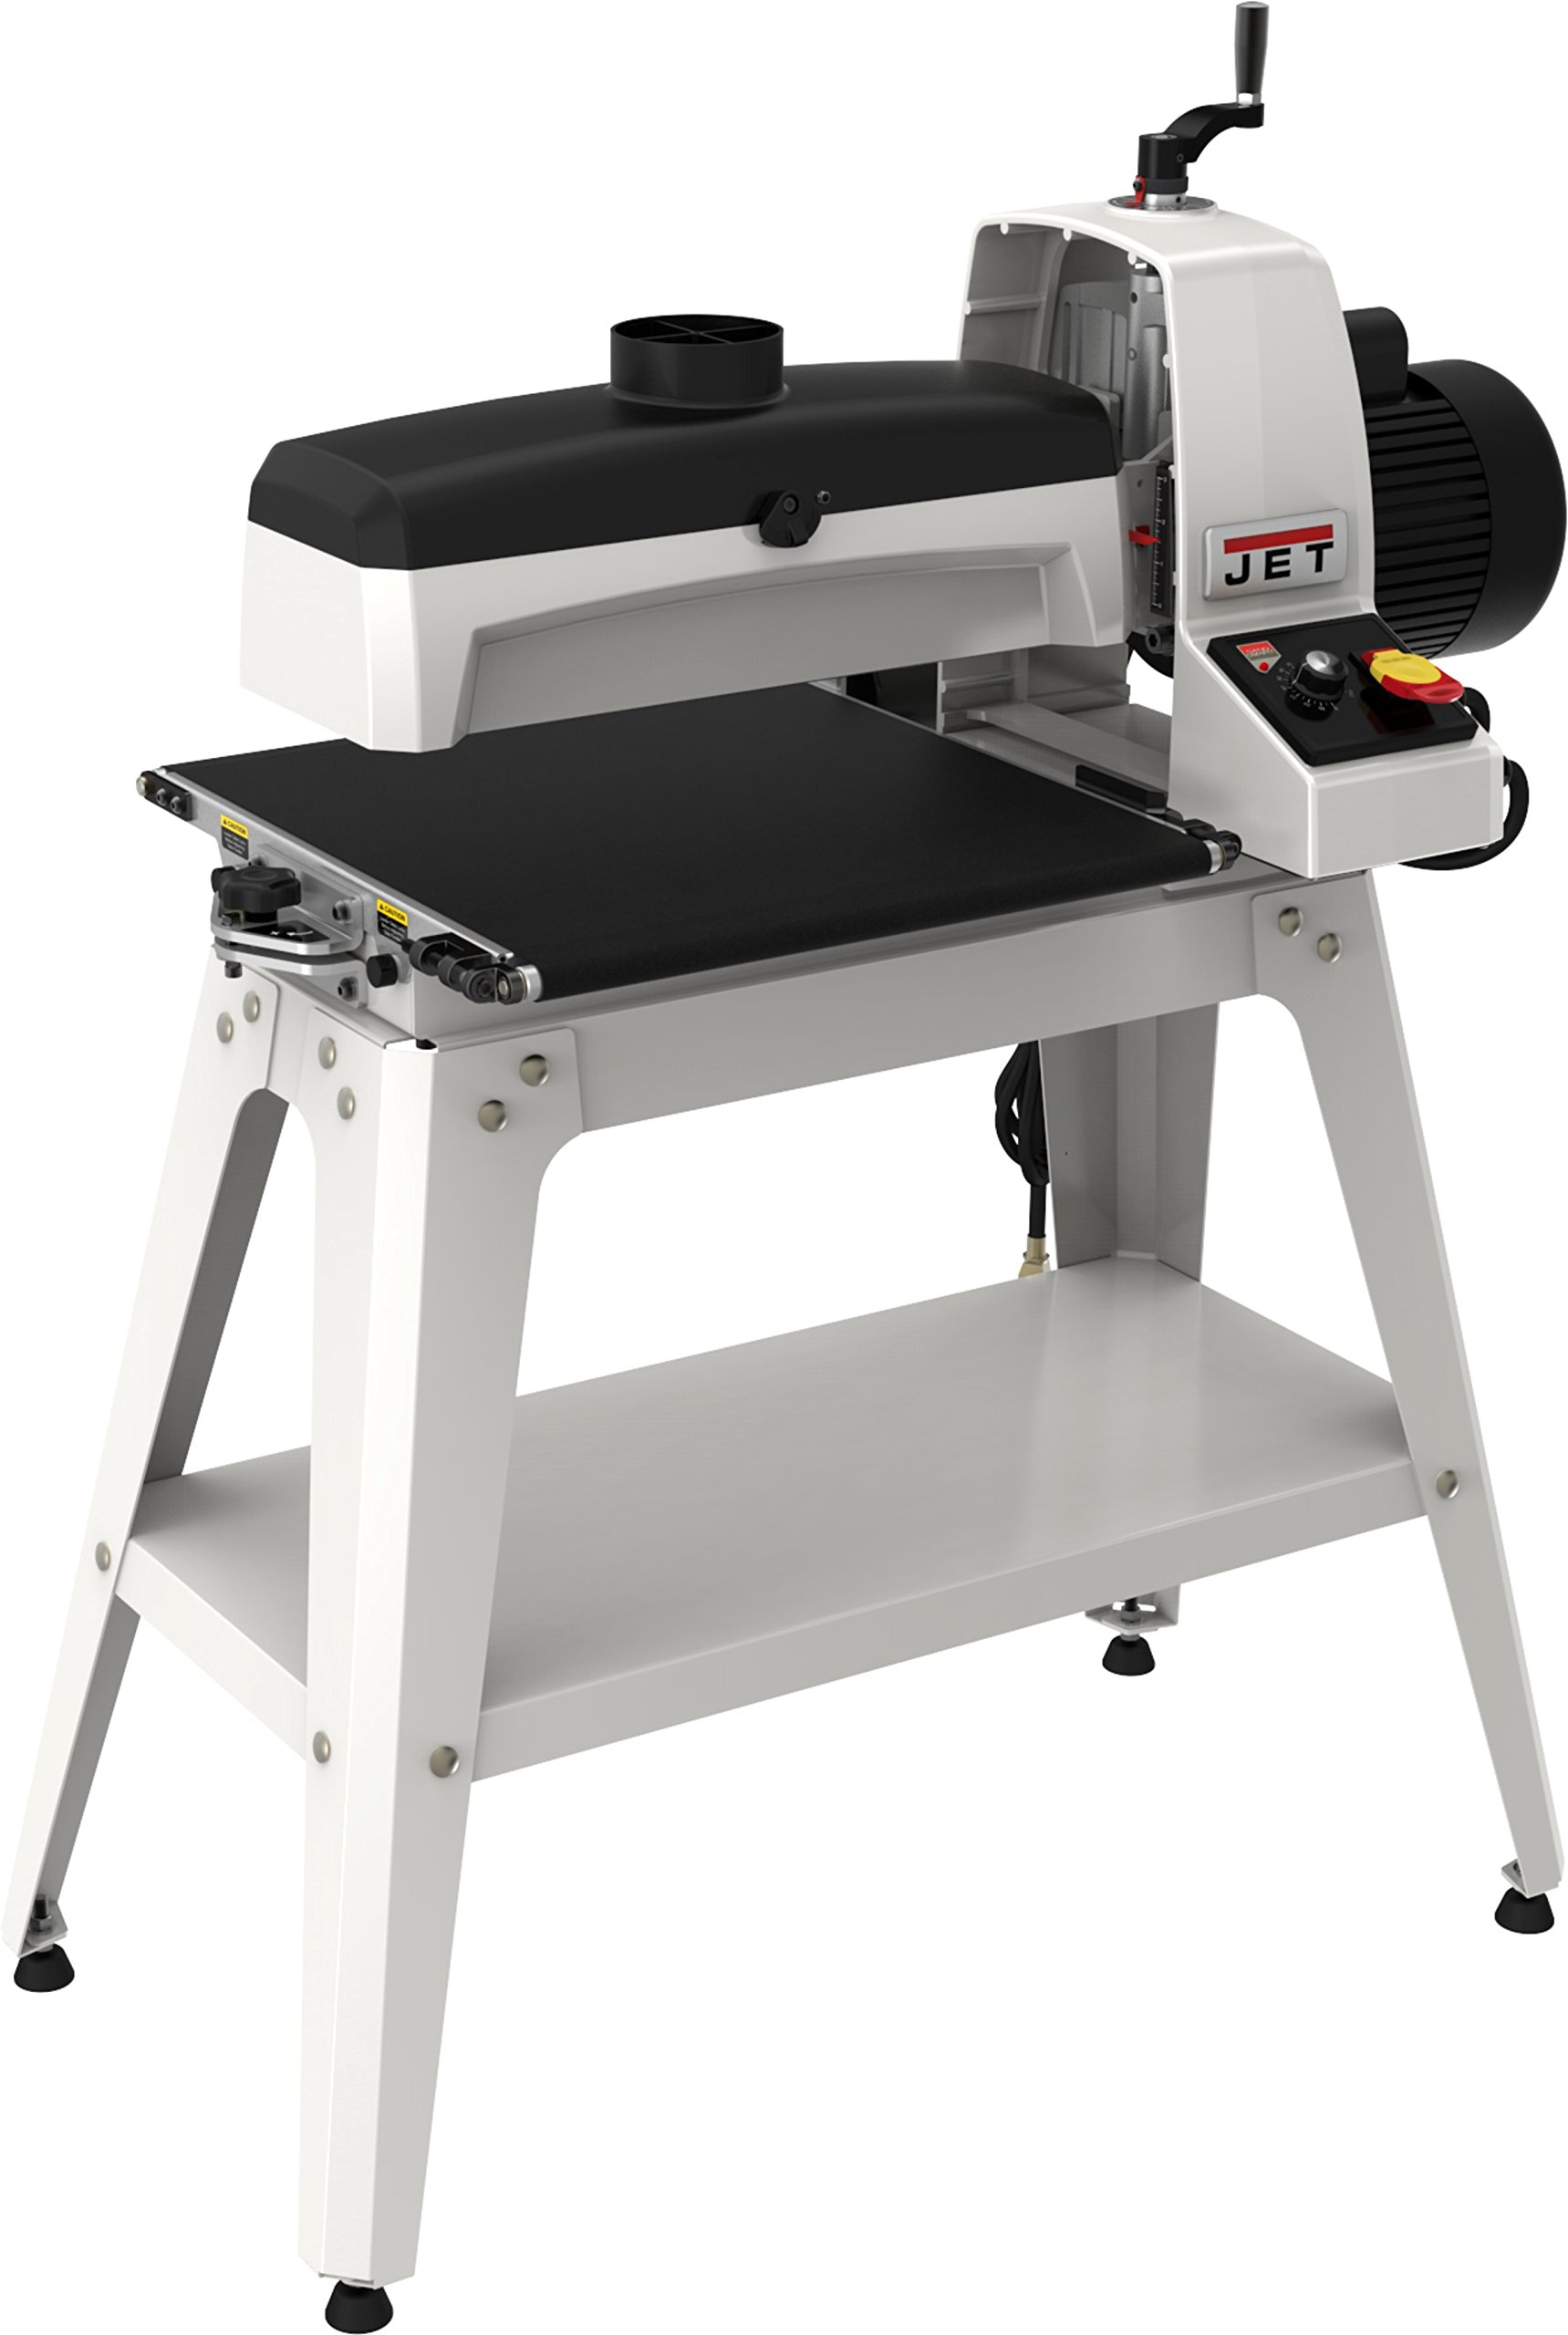 Jet 723520K JWDS-1632 16-32 Plus 20 Amp Service with 608003 Stand in Woodworking, Sanders, Drum Sanders